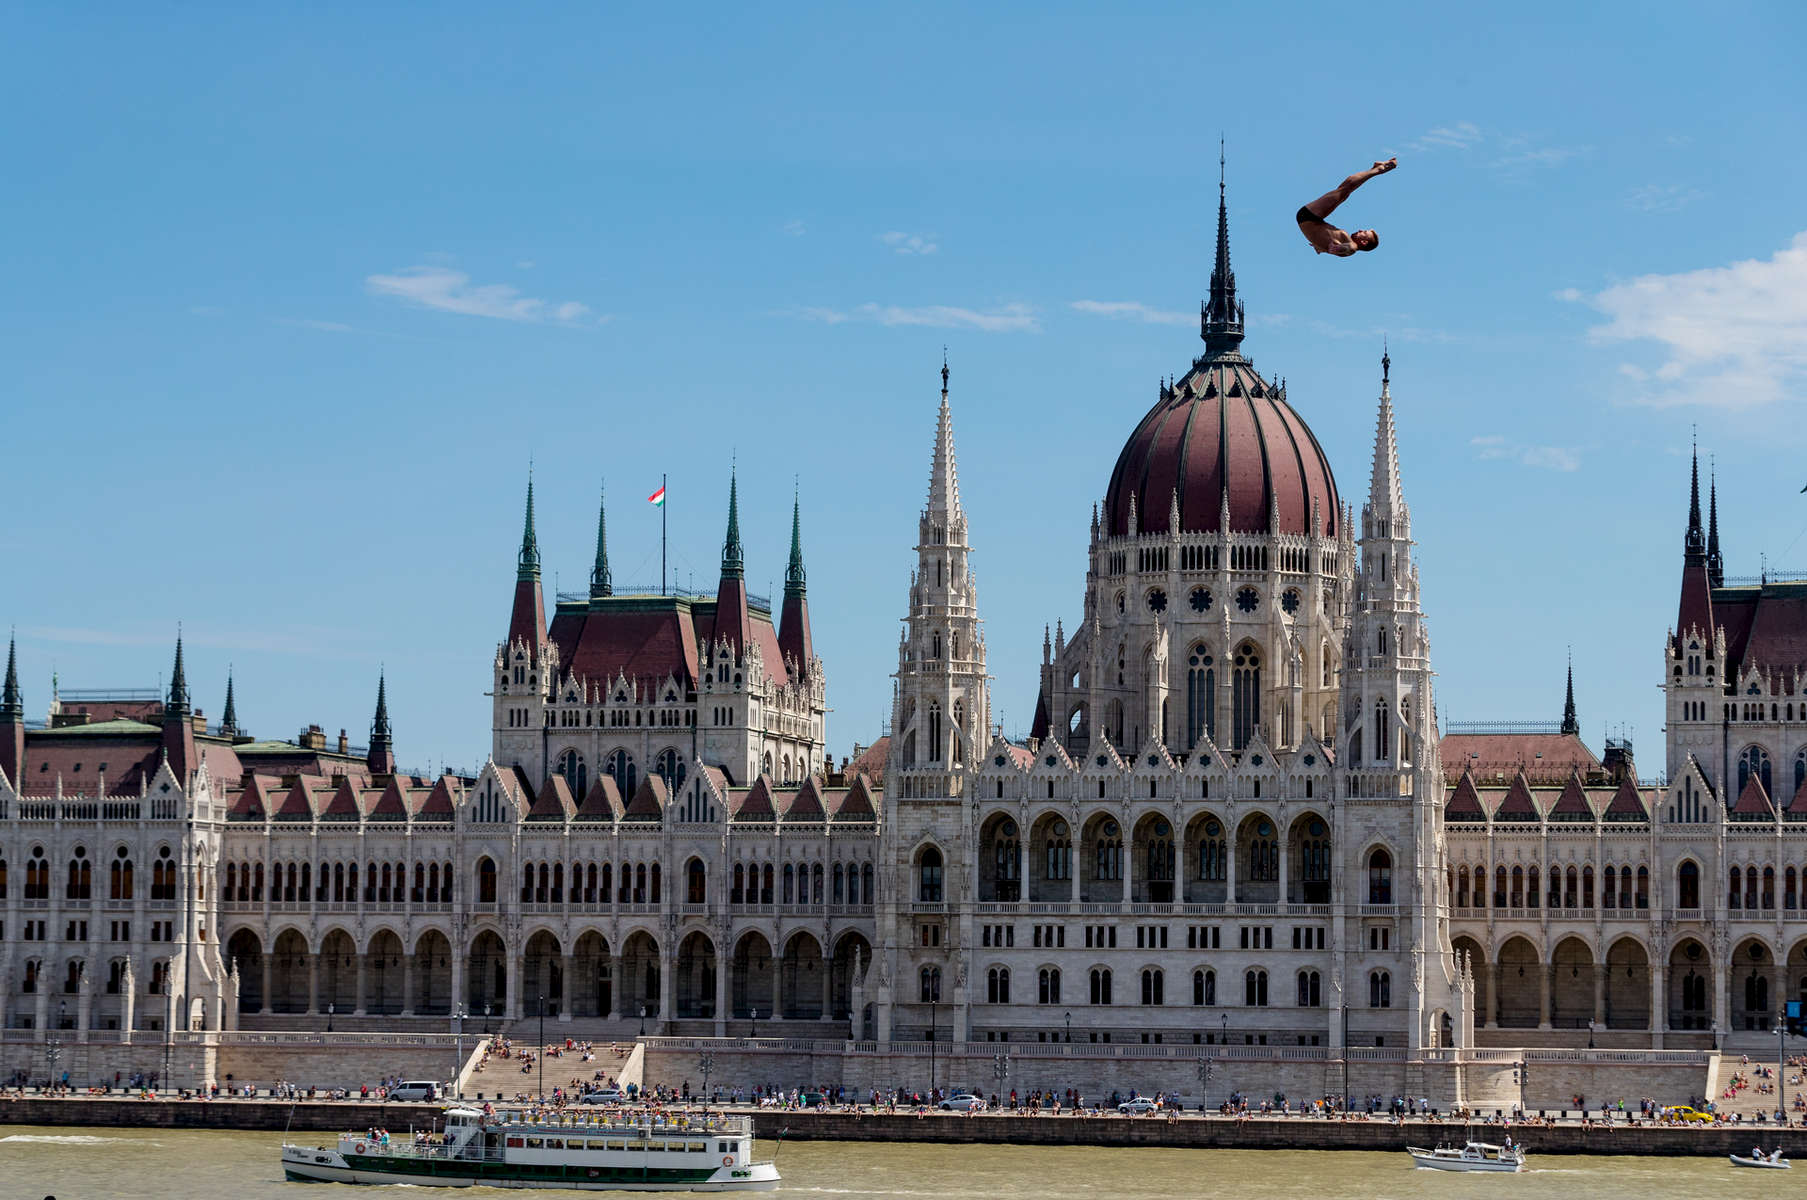 Artem Silchenko of Russia competes during the Men's High Diving on day seventeen of the Budapest 2017 FINA World Championships on July 30, 2017 in Budapest, Hungary.